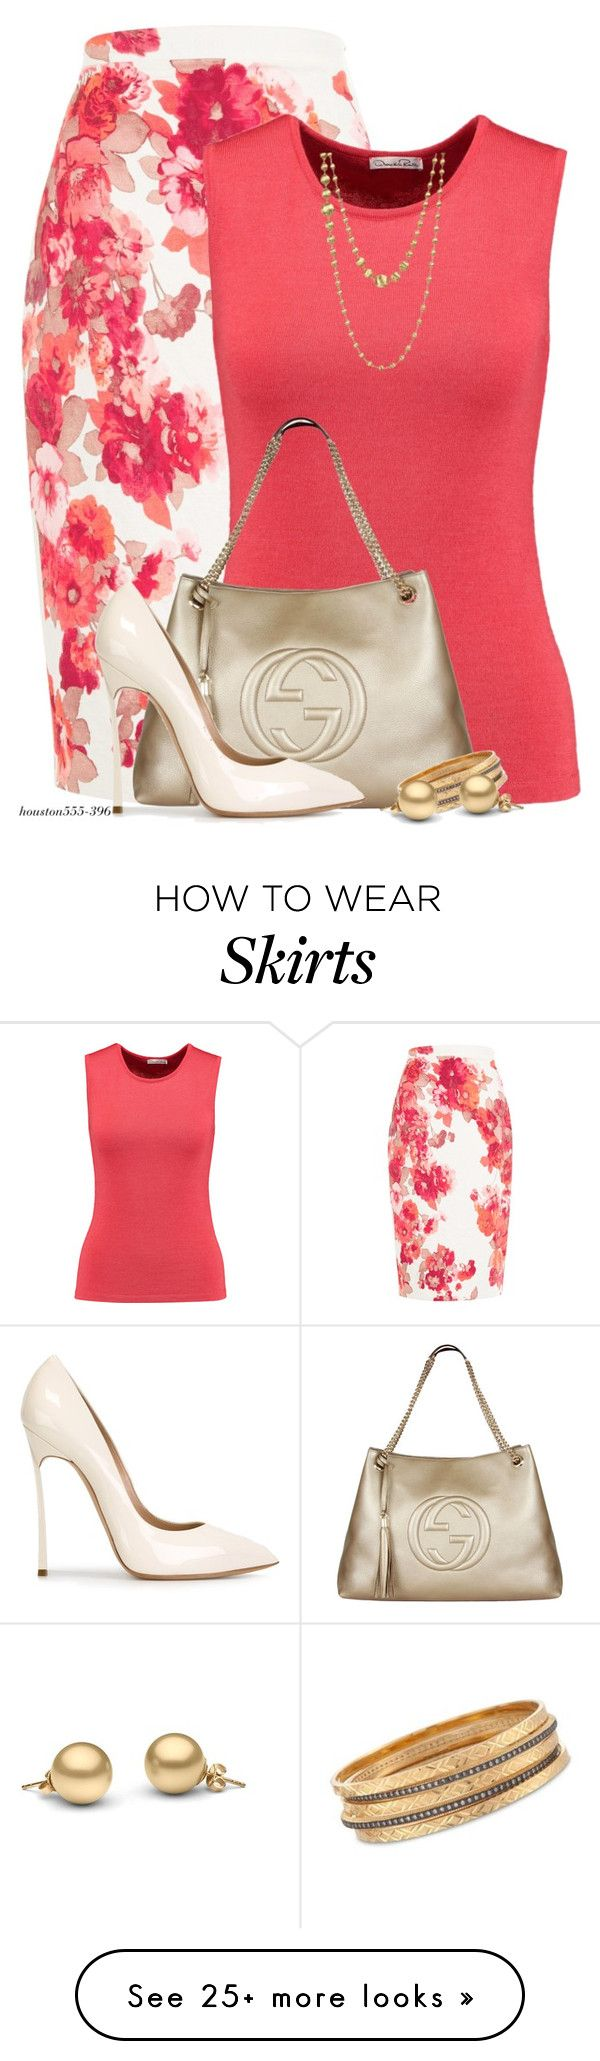 """""""Floral Pencil Skirt"""" by houston555-396 on Polyvore featuring Damsel in a Dress, Oscar de la Renta, Gucci, Casadei, Ross-Simons and Marco Bicego"""